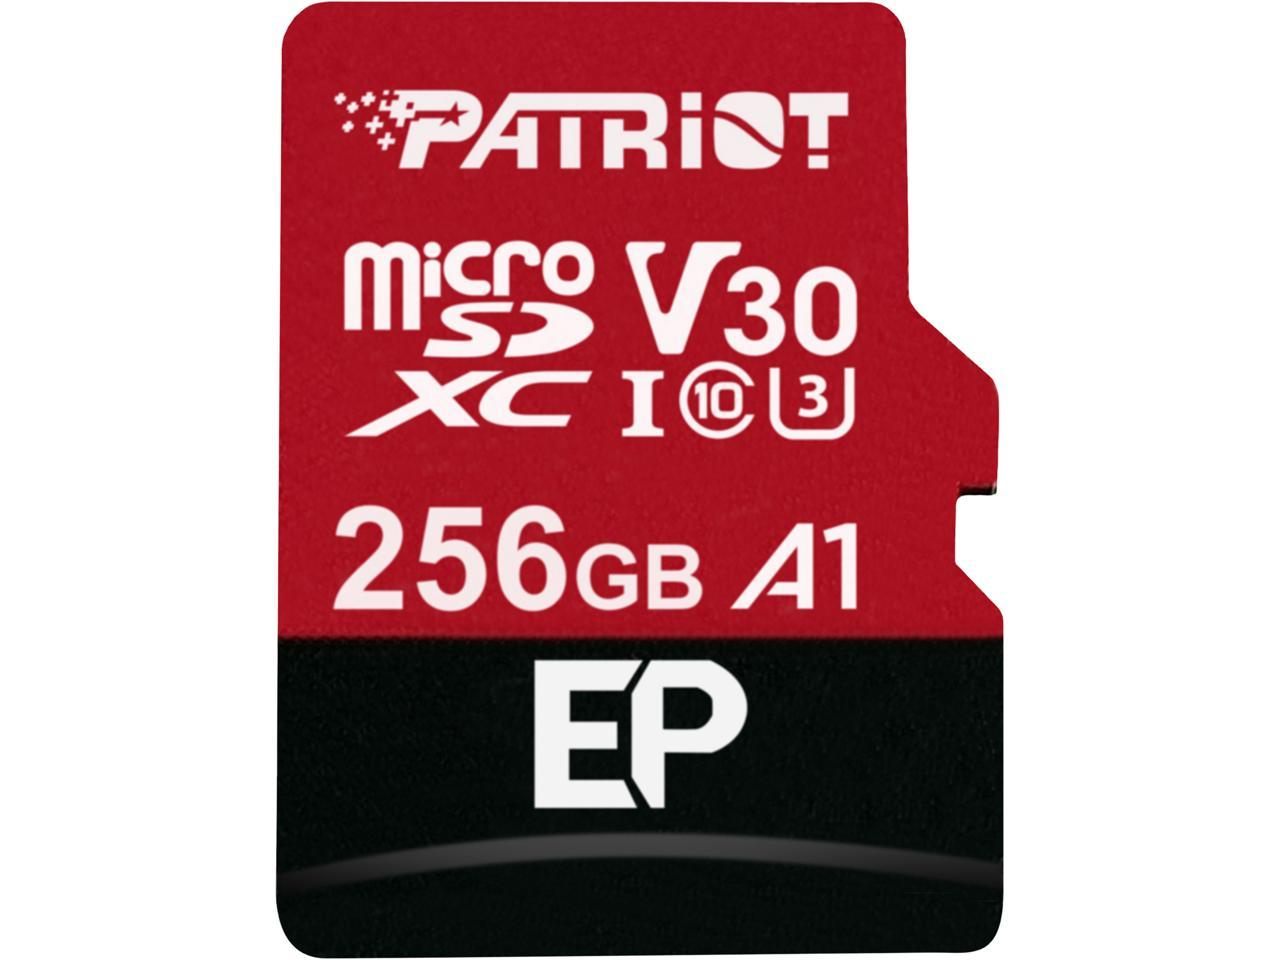 NEW 16Gb Genuine Patriot Memory Card for SONY ALPHA NEX-5 Digital camera